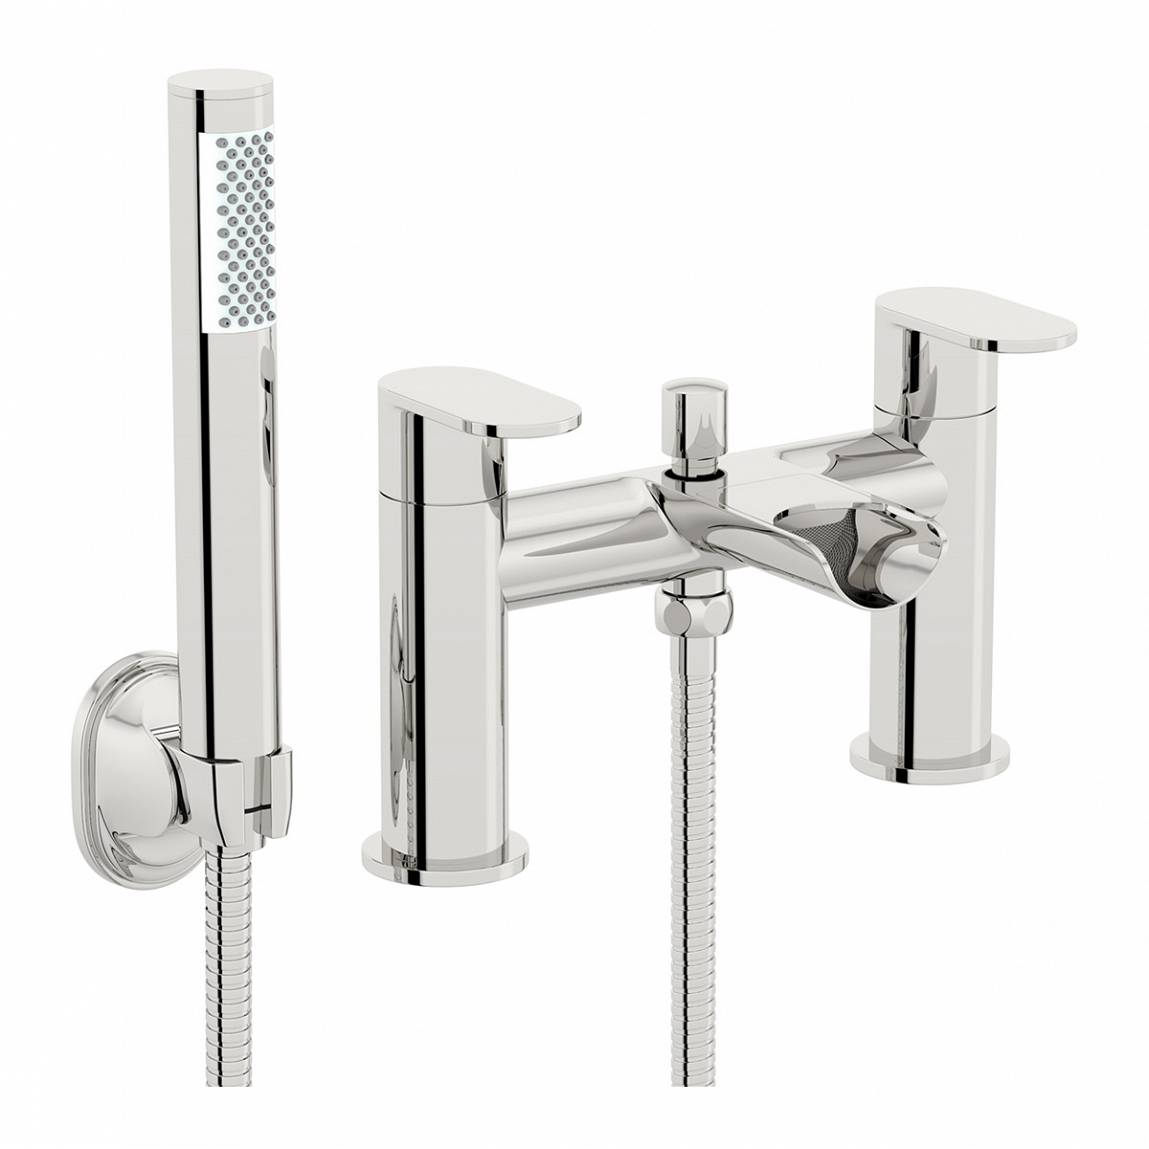 Image of Keswick Waterfall Bath Shower Mixer